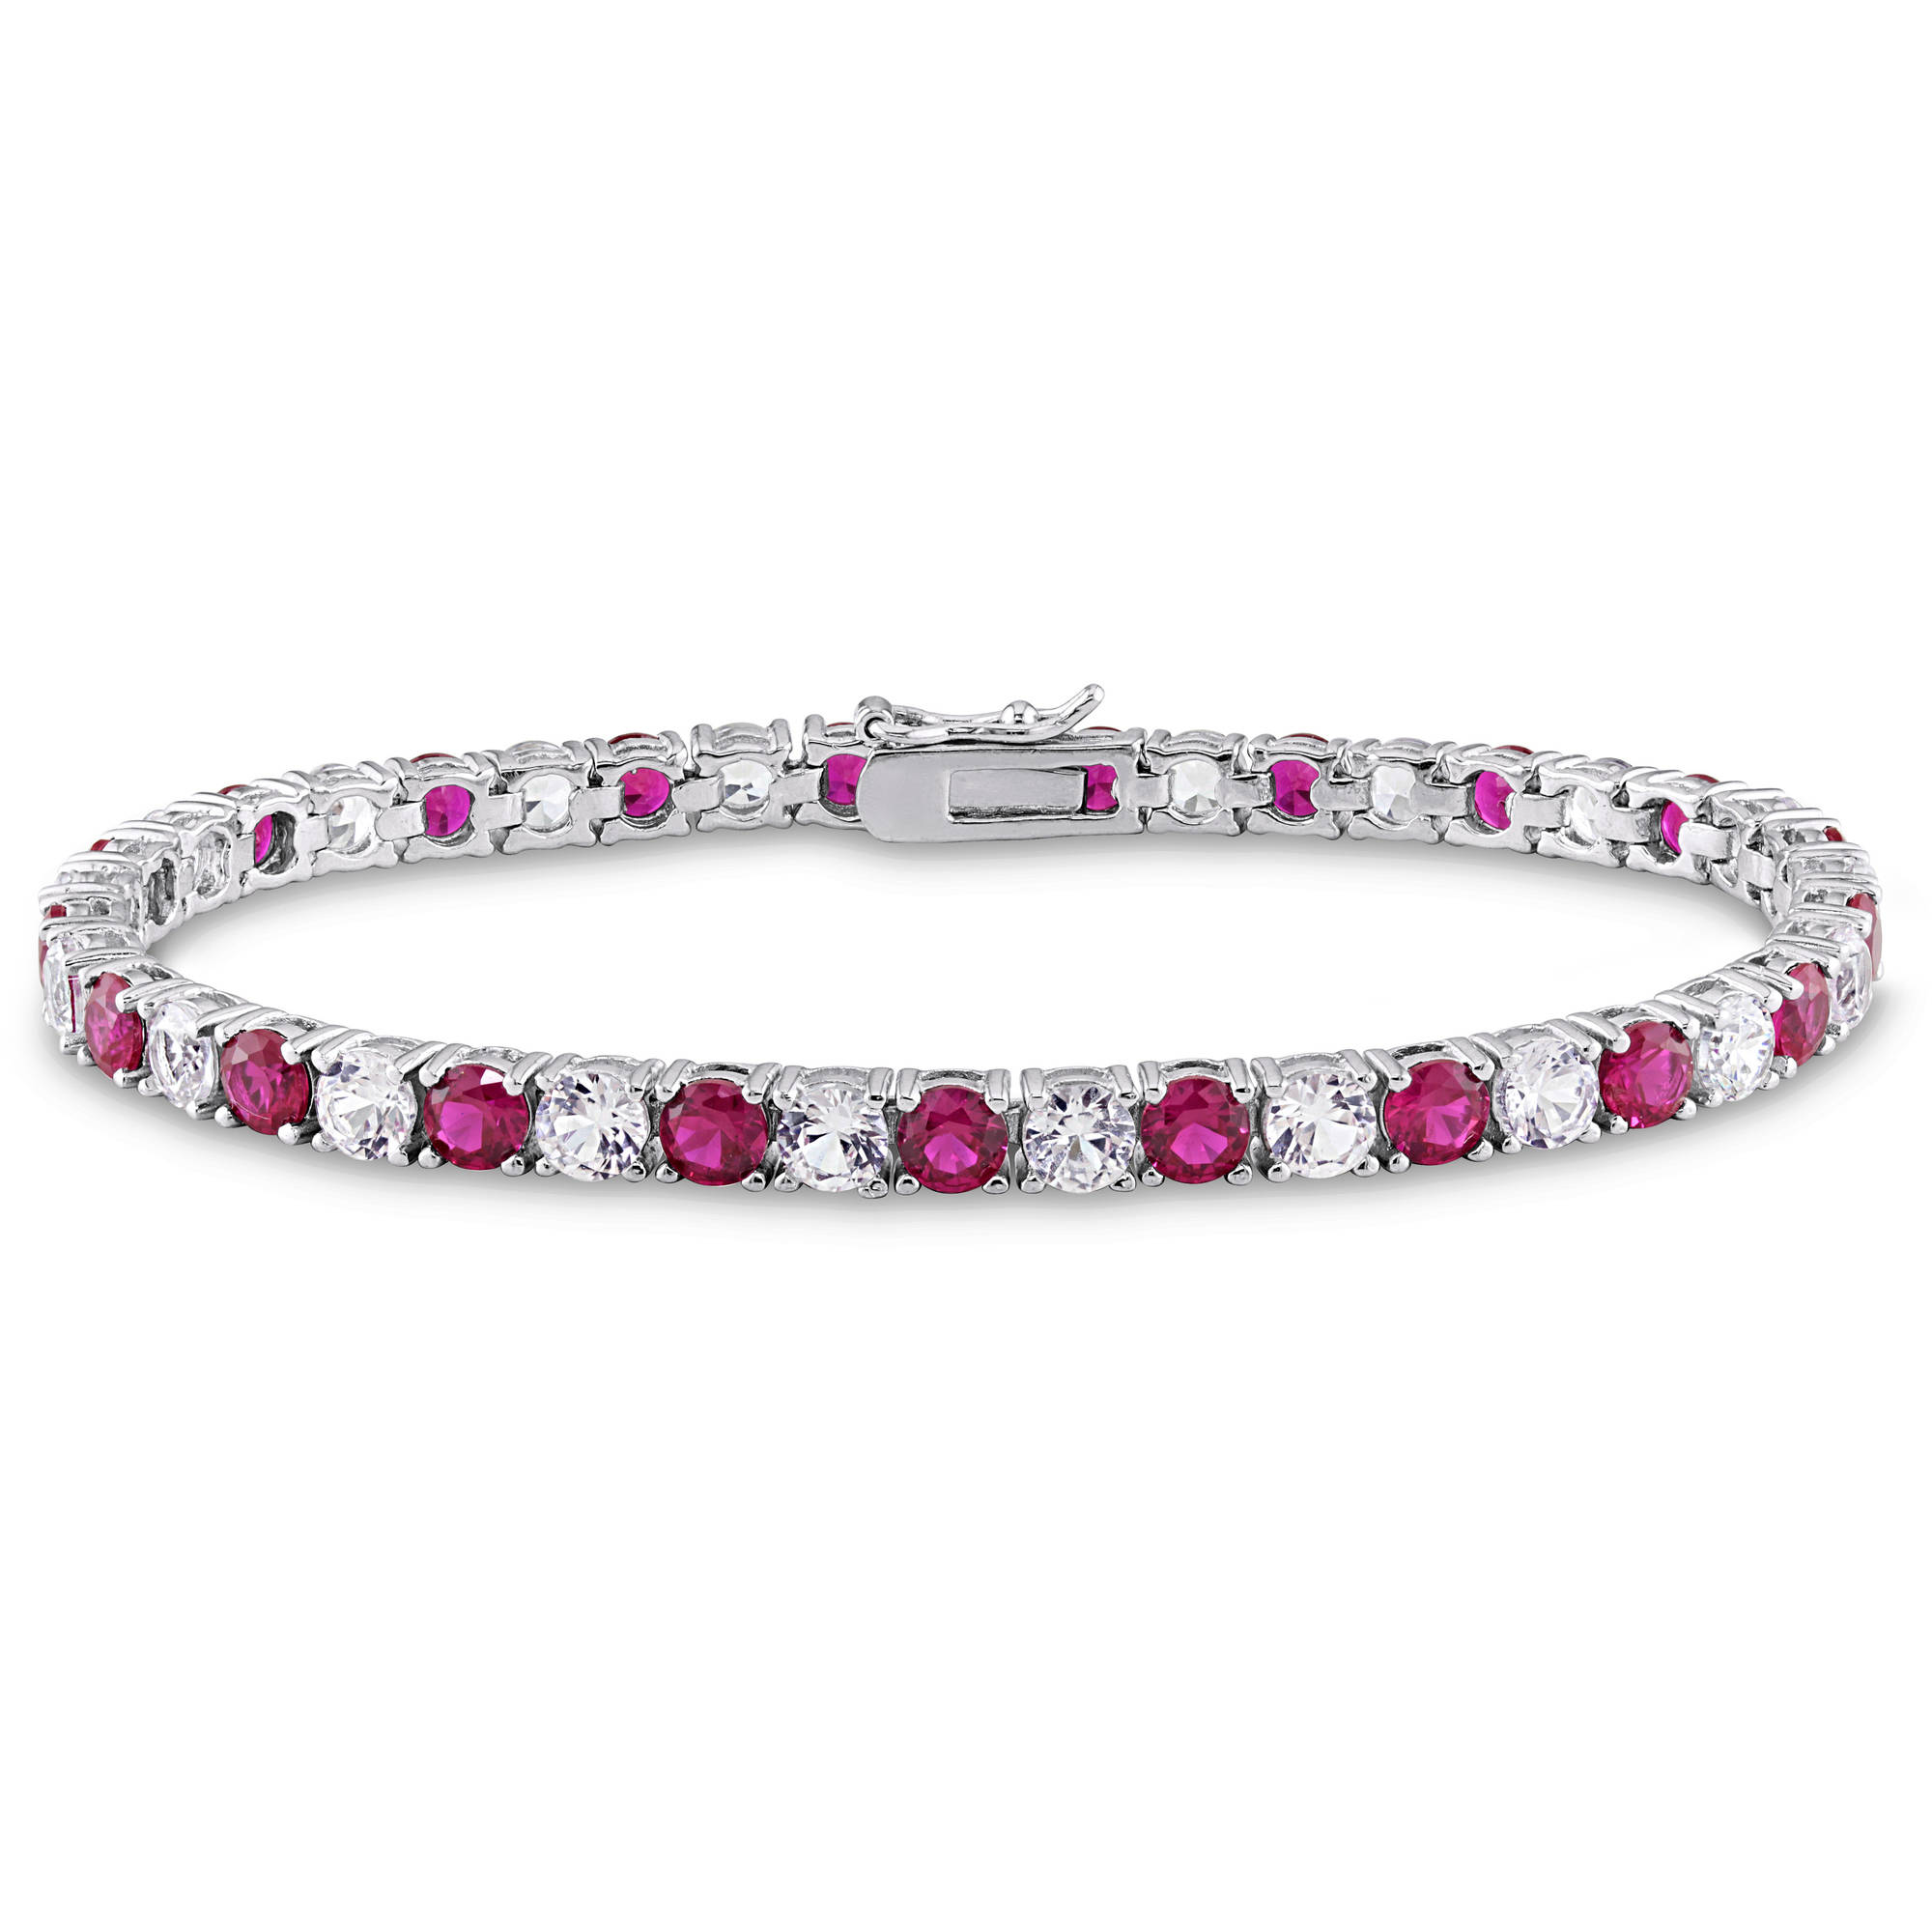 Tangelo 14-1/2 Carat T.G.W. Created White Sapphire and Ruby Sterling Silver Tennis Bracelet, 7.25